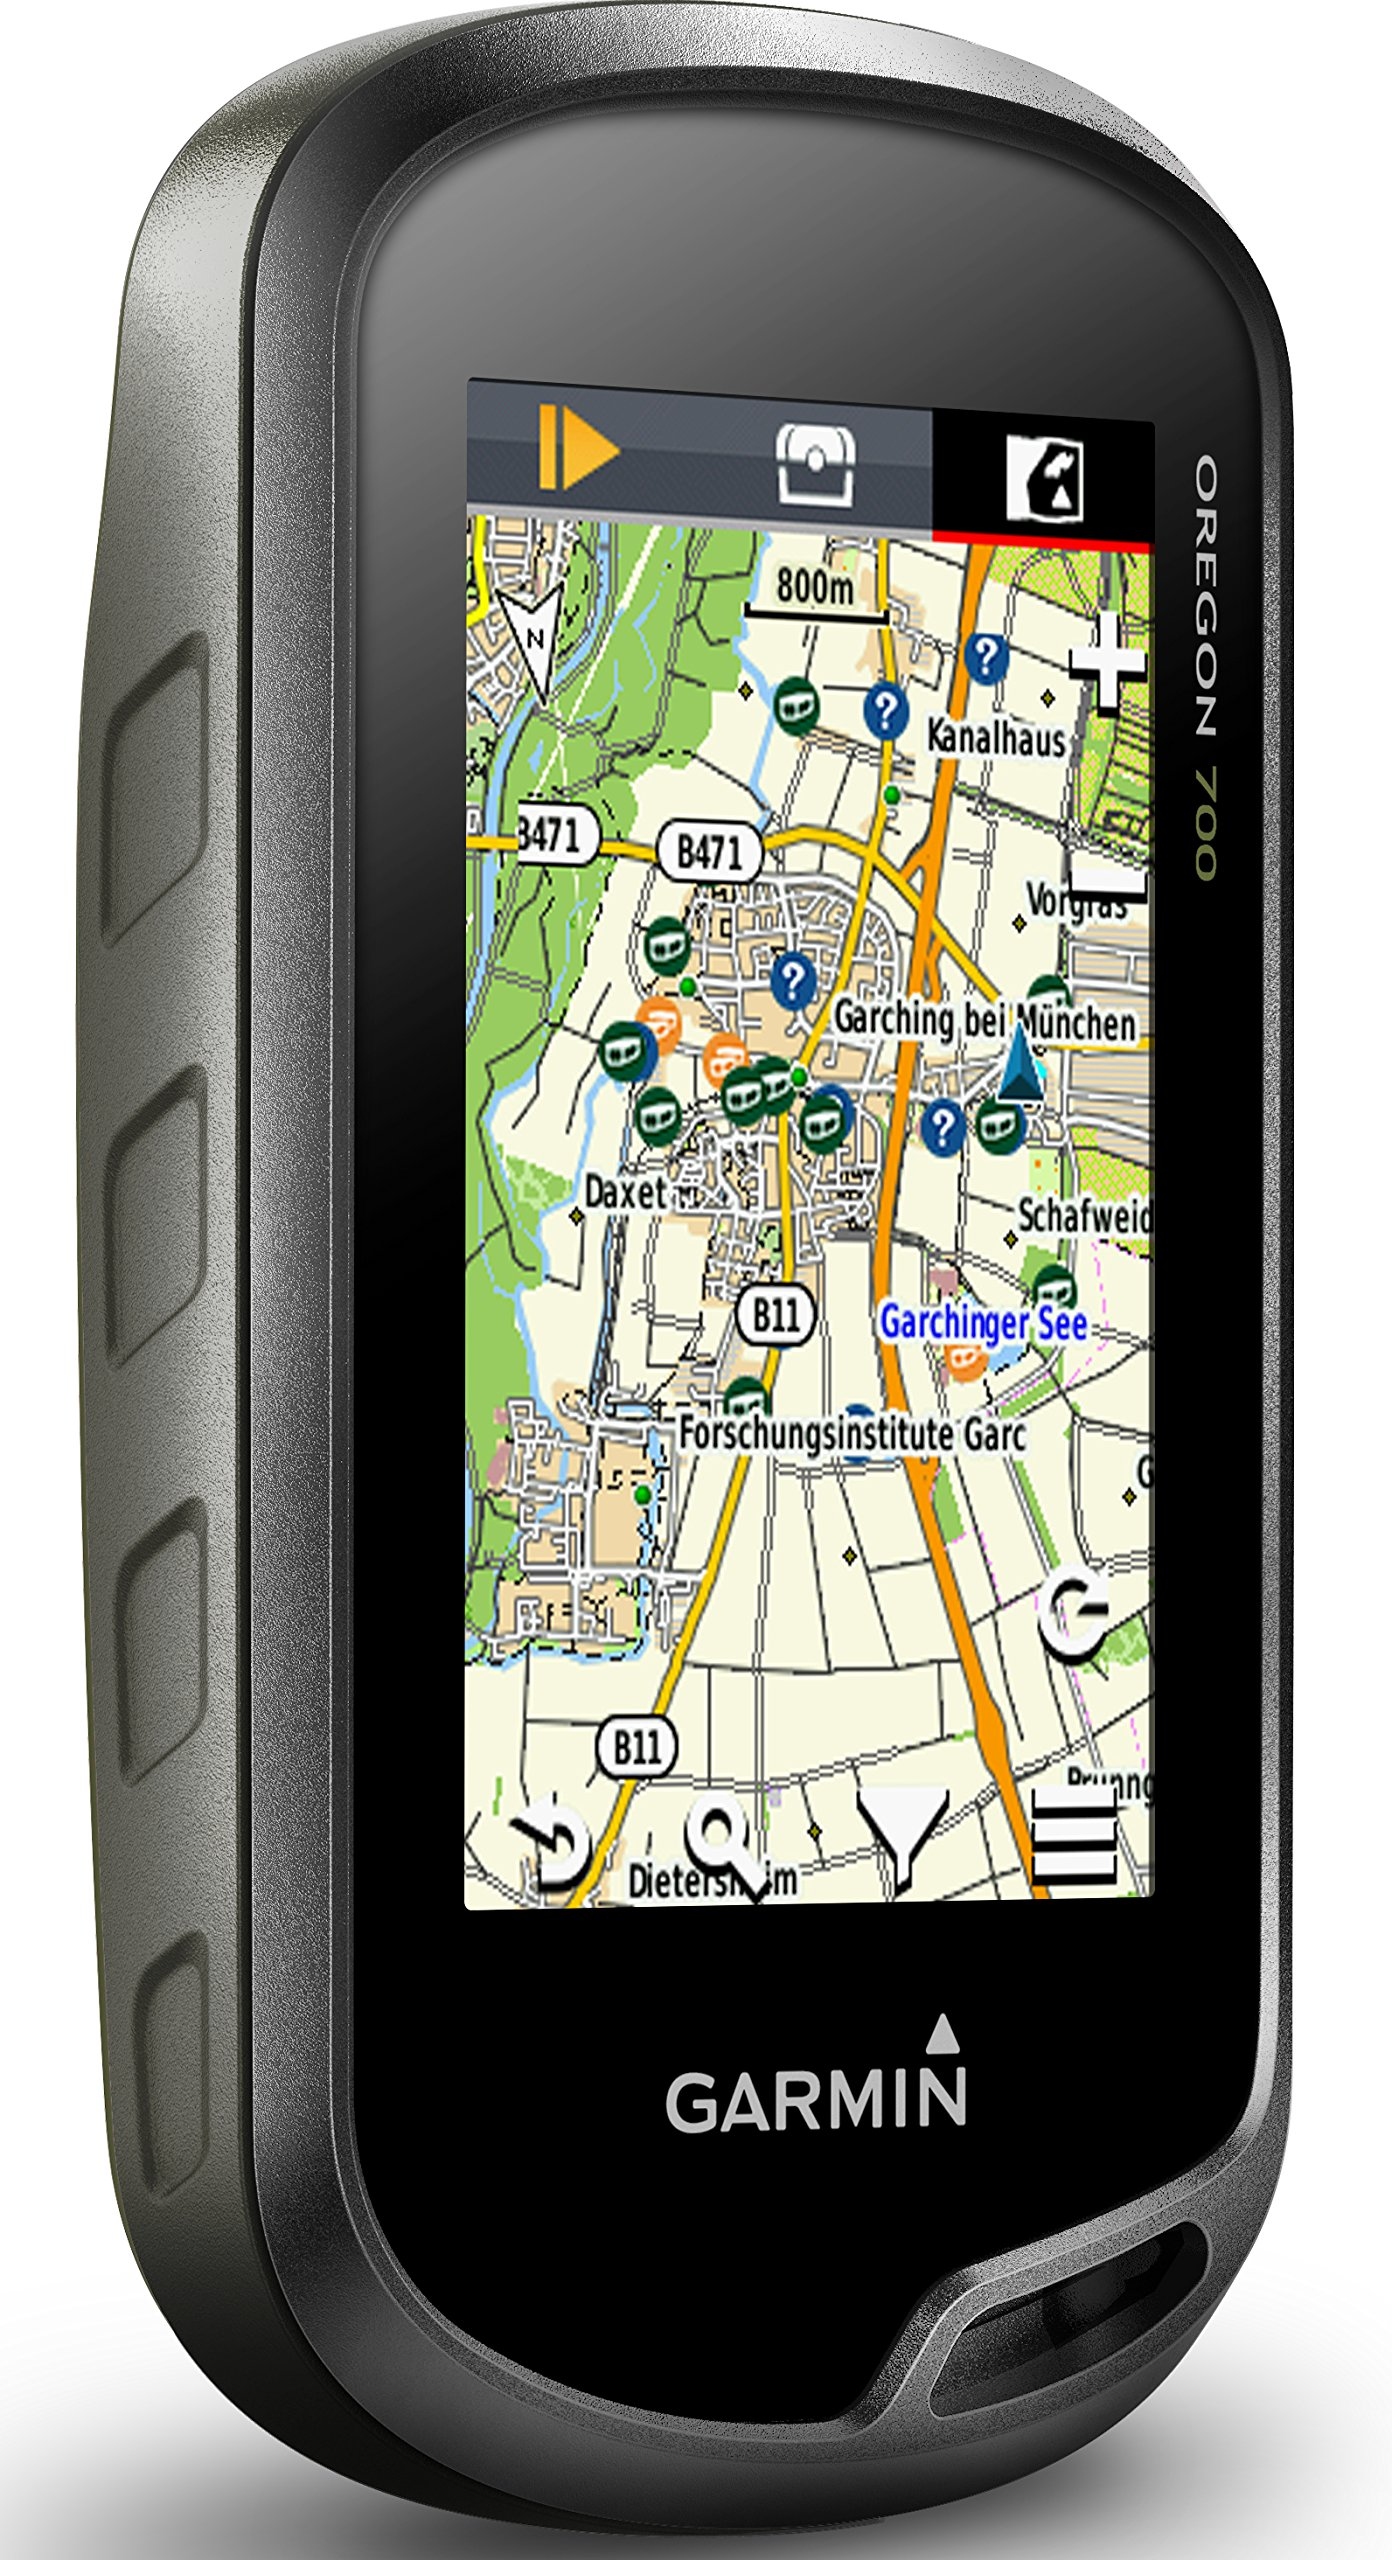 Garmin Oregon 700 Handheld GPS Navigation System 6